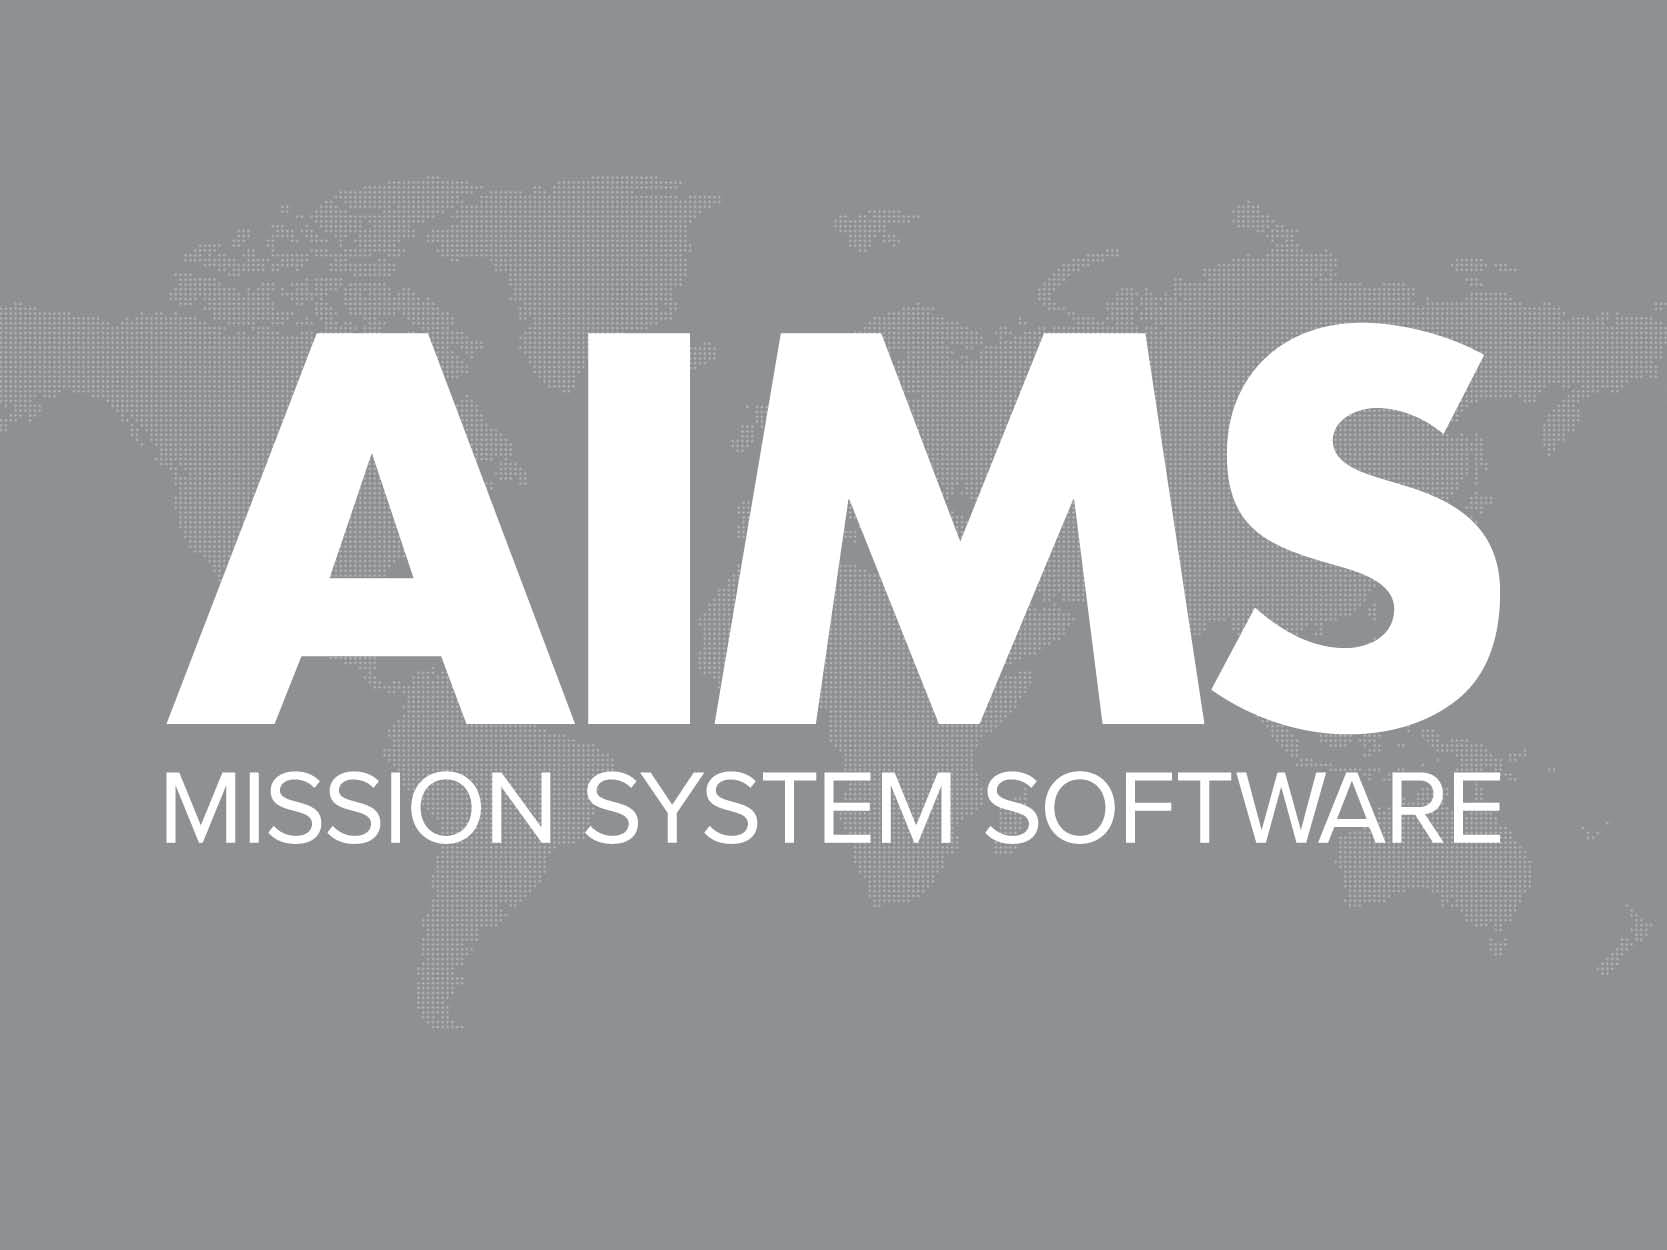 OUR SOFTWARE - AIMS is market-leading mission system software that enhances situational awareness and improves mission effectiveness on airborne, land-based, and maritime platforms.